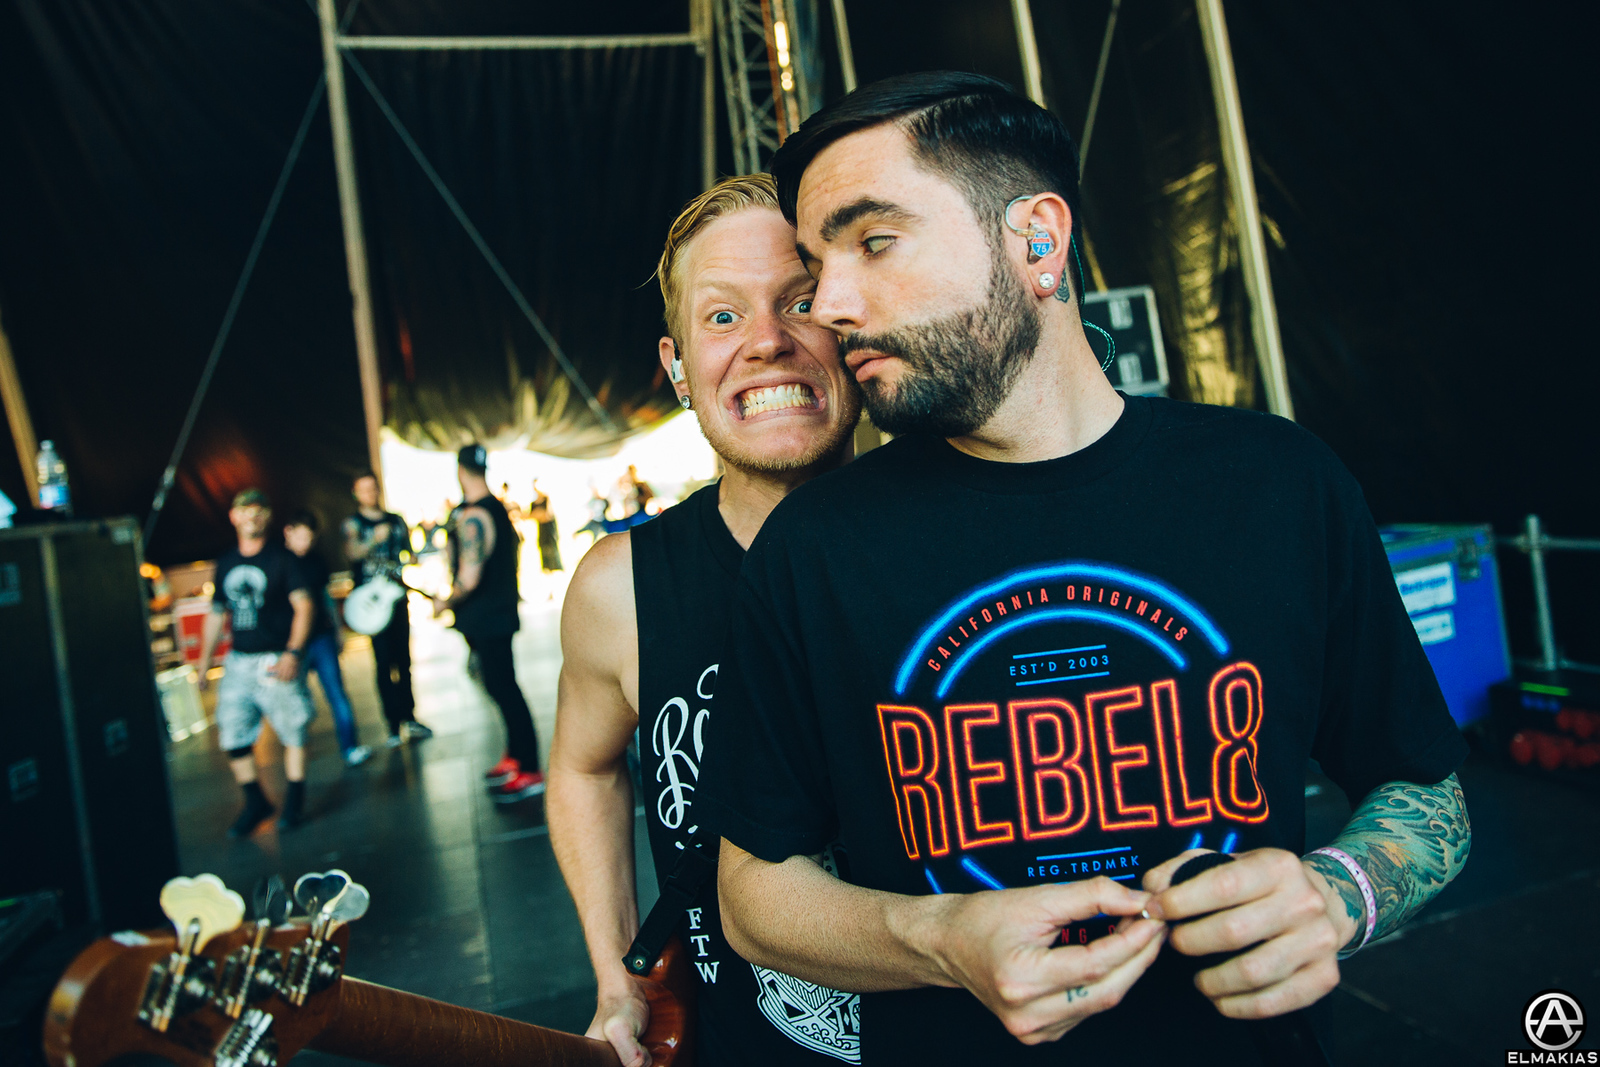 Jeremy and Josh of A Day To Remember at Greenfield Festival in Interlaken, Switzerland - European Festivals